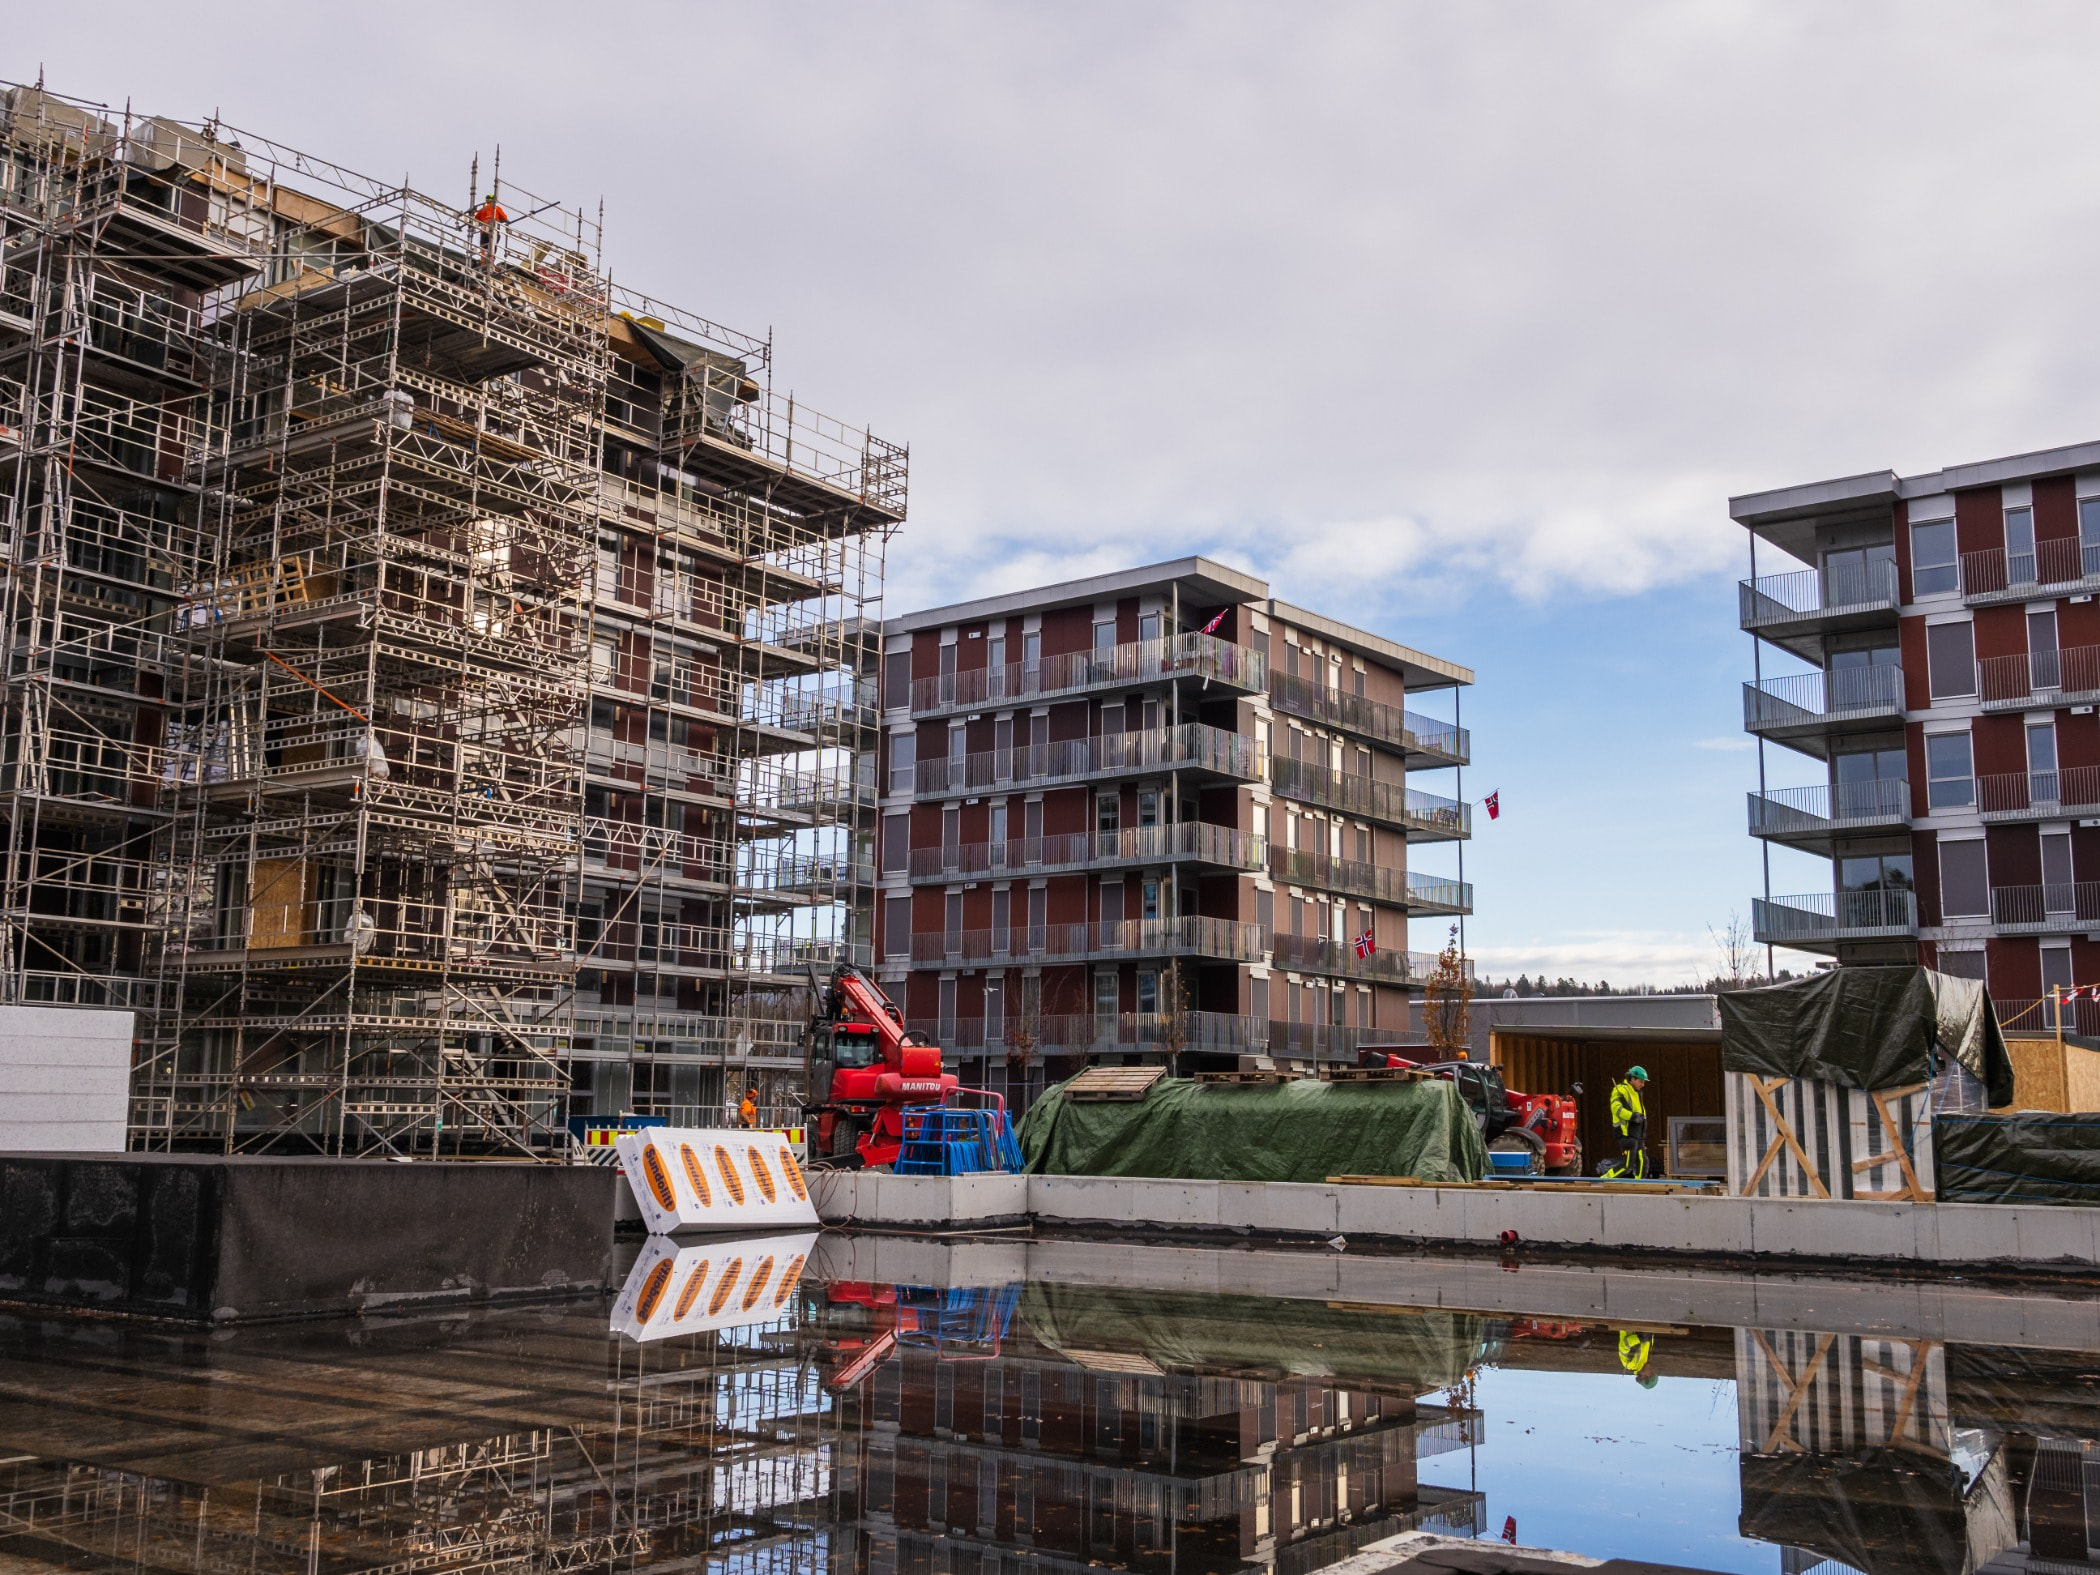 Urban area, Mixed-use, Construction, Canal, Property, Building, Sky, Condominium, Architecture, Waterway